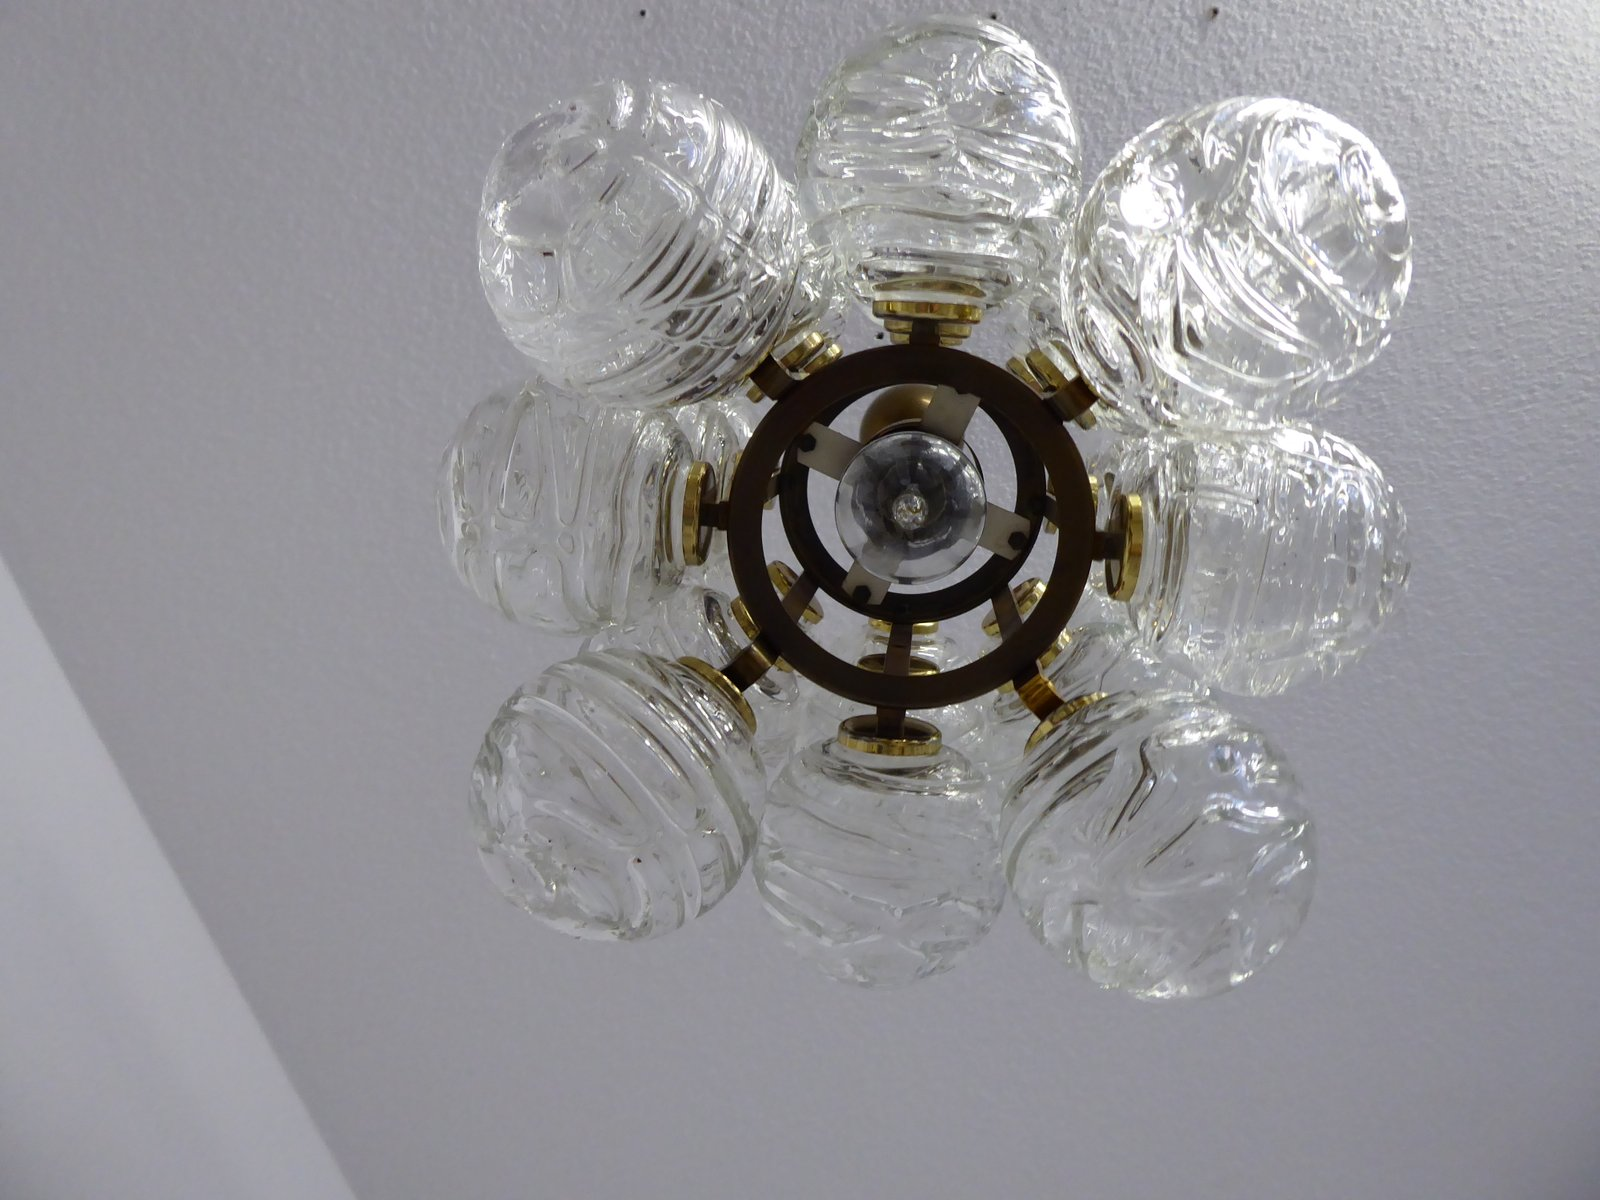 Mid Century Atomic Ceiling Light from Doria 1970s for sale at Pamono